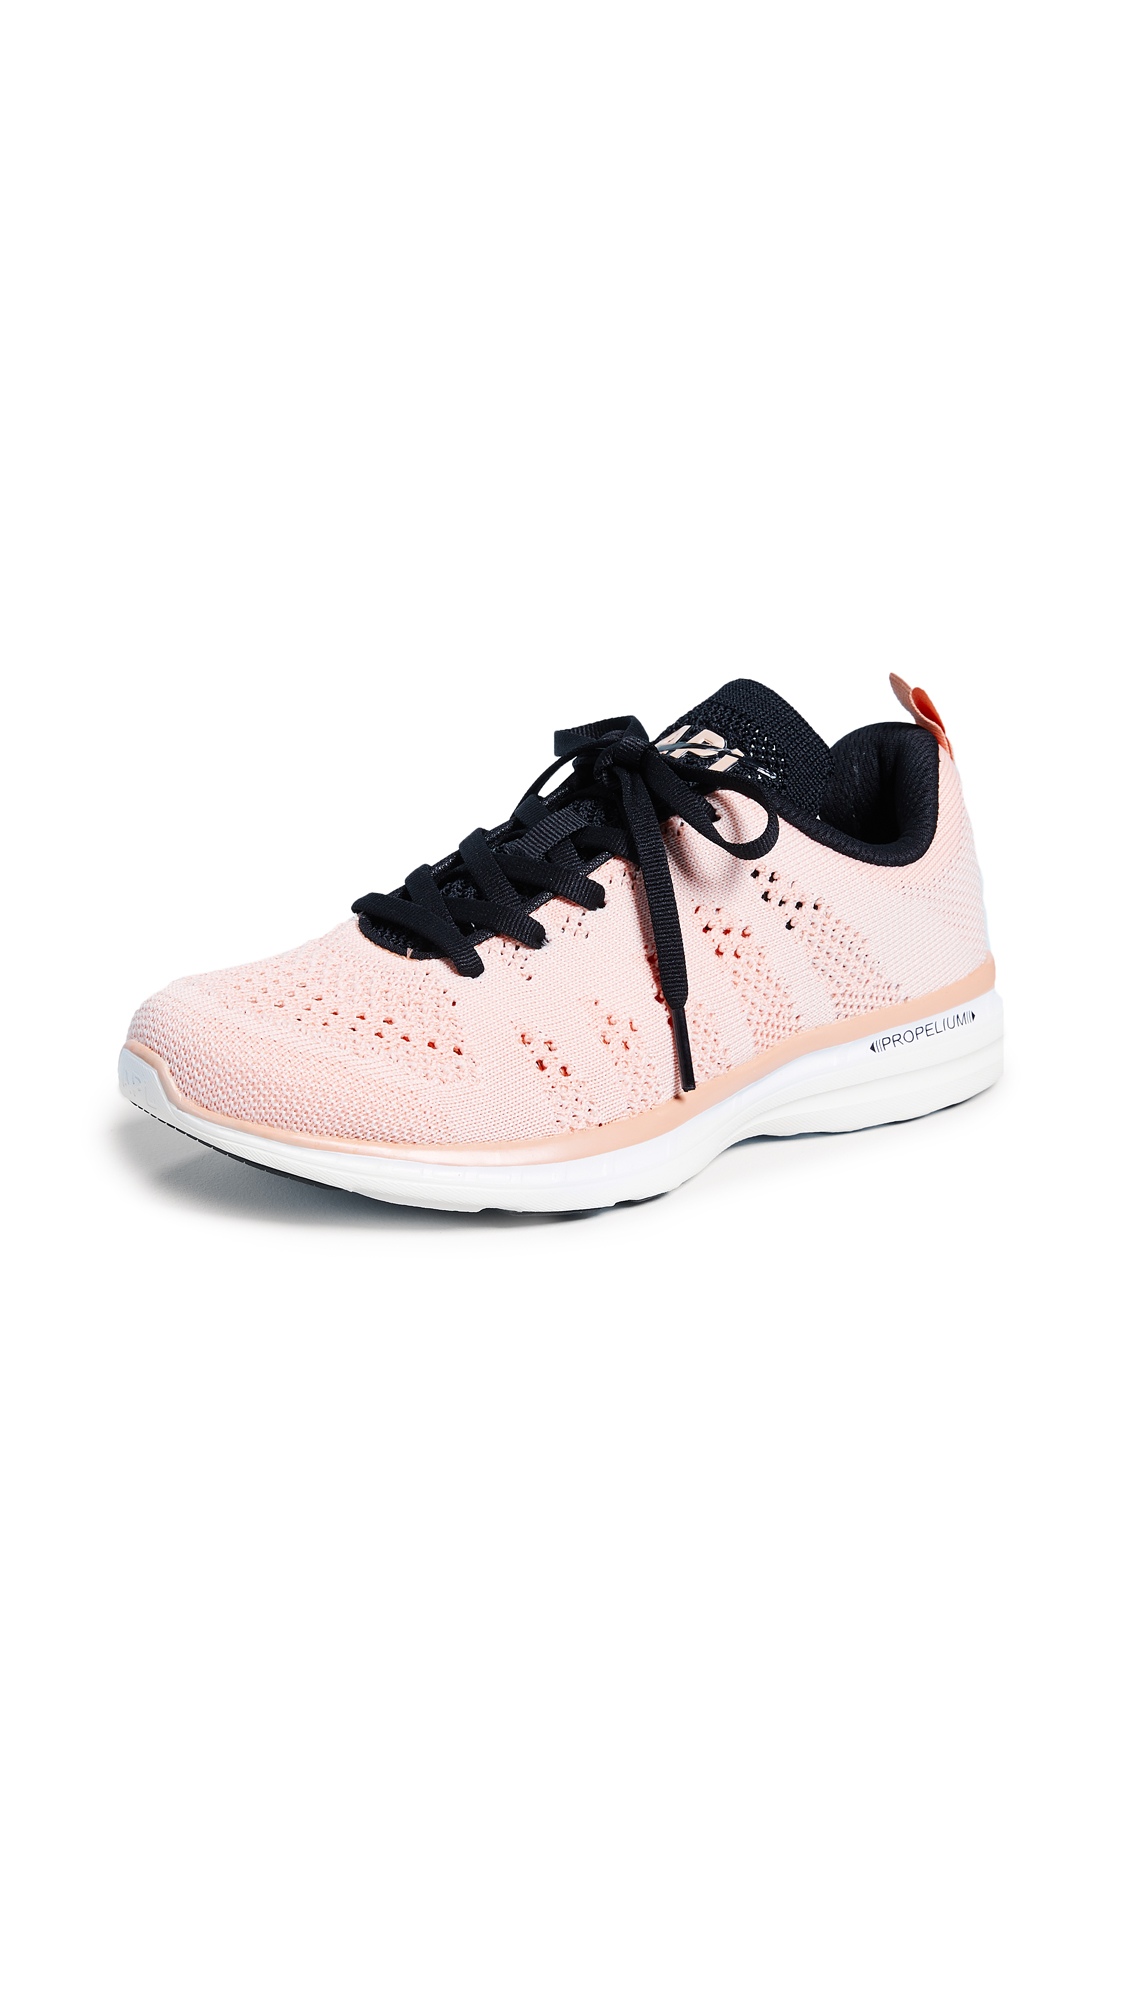 APL: Athletic Propulsion Labs Techloom Pro Sneakers - Blush/Black/White